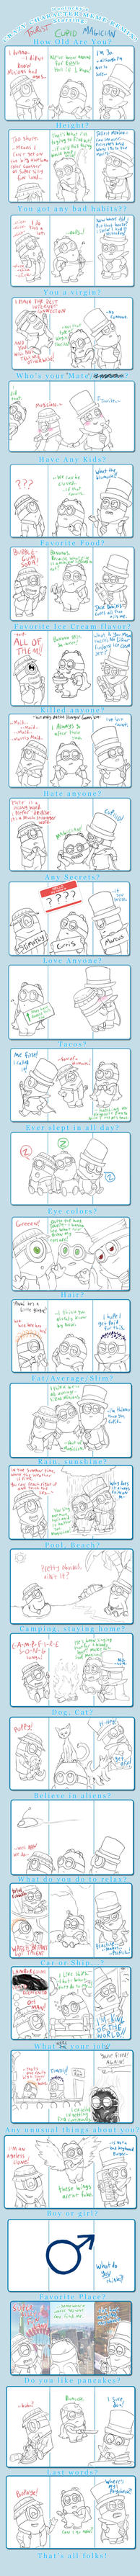 Meme with Minions by FeralSonic